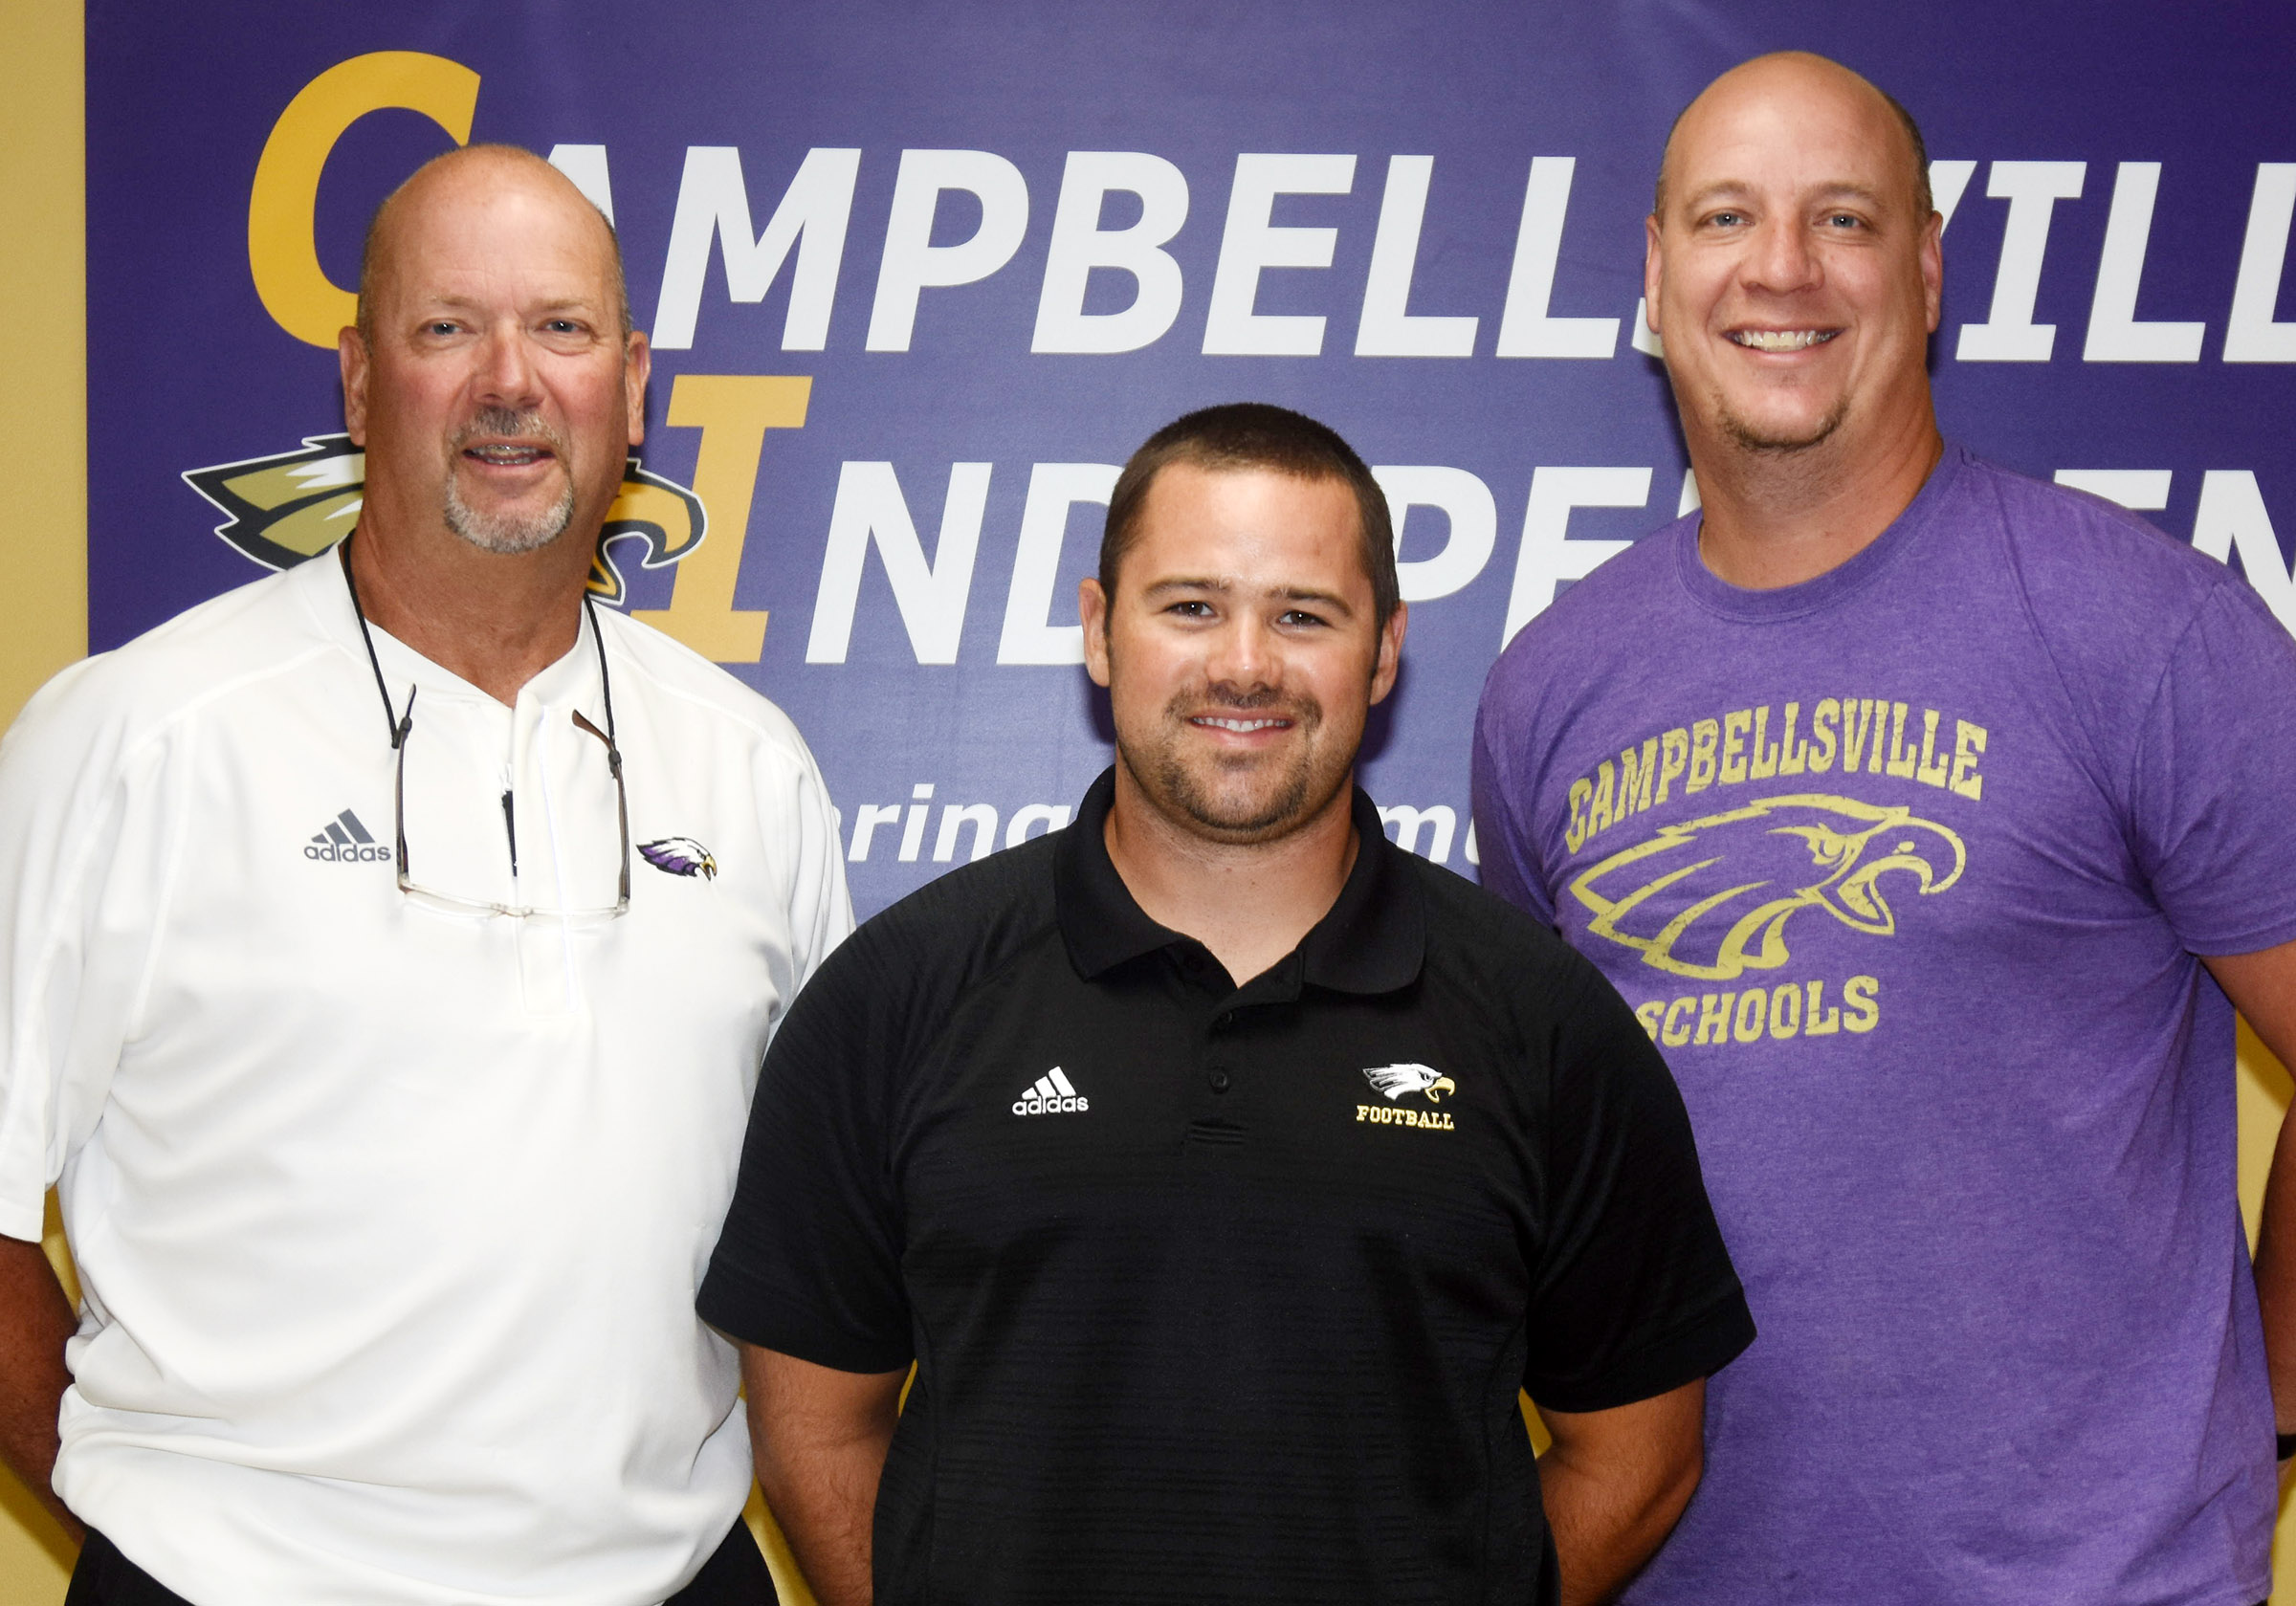 Blake Milby, who teaches social studies at Campbellsville High School and is also head baseball coach, has been hired for the CHS golf coach post. Pictured with him are CHS Athletic Director Tim Davis, at left, and CHS Principal David Petett.